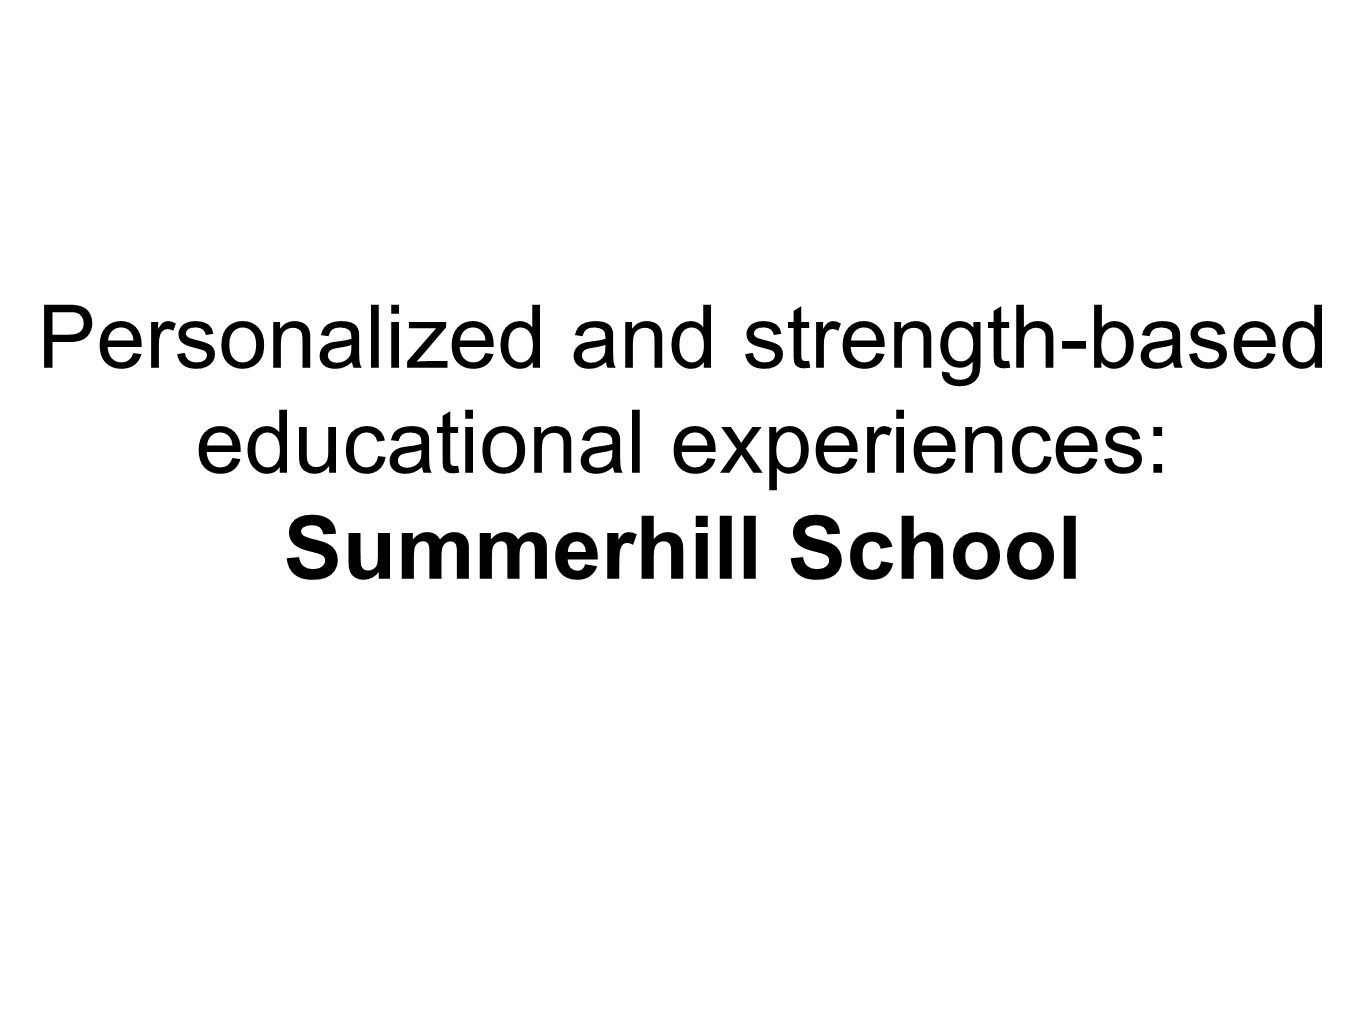 Personalized and strength-based educational experiences: Summerhill School